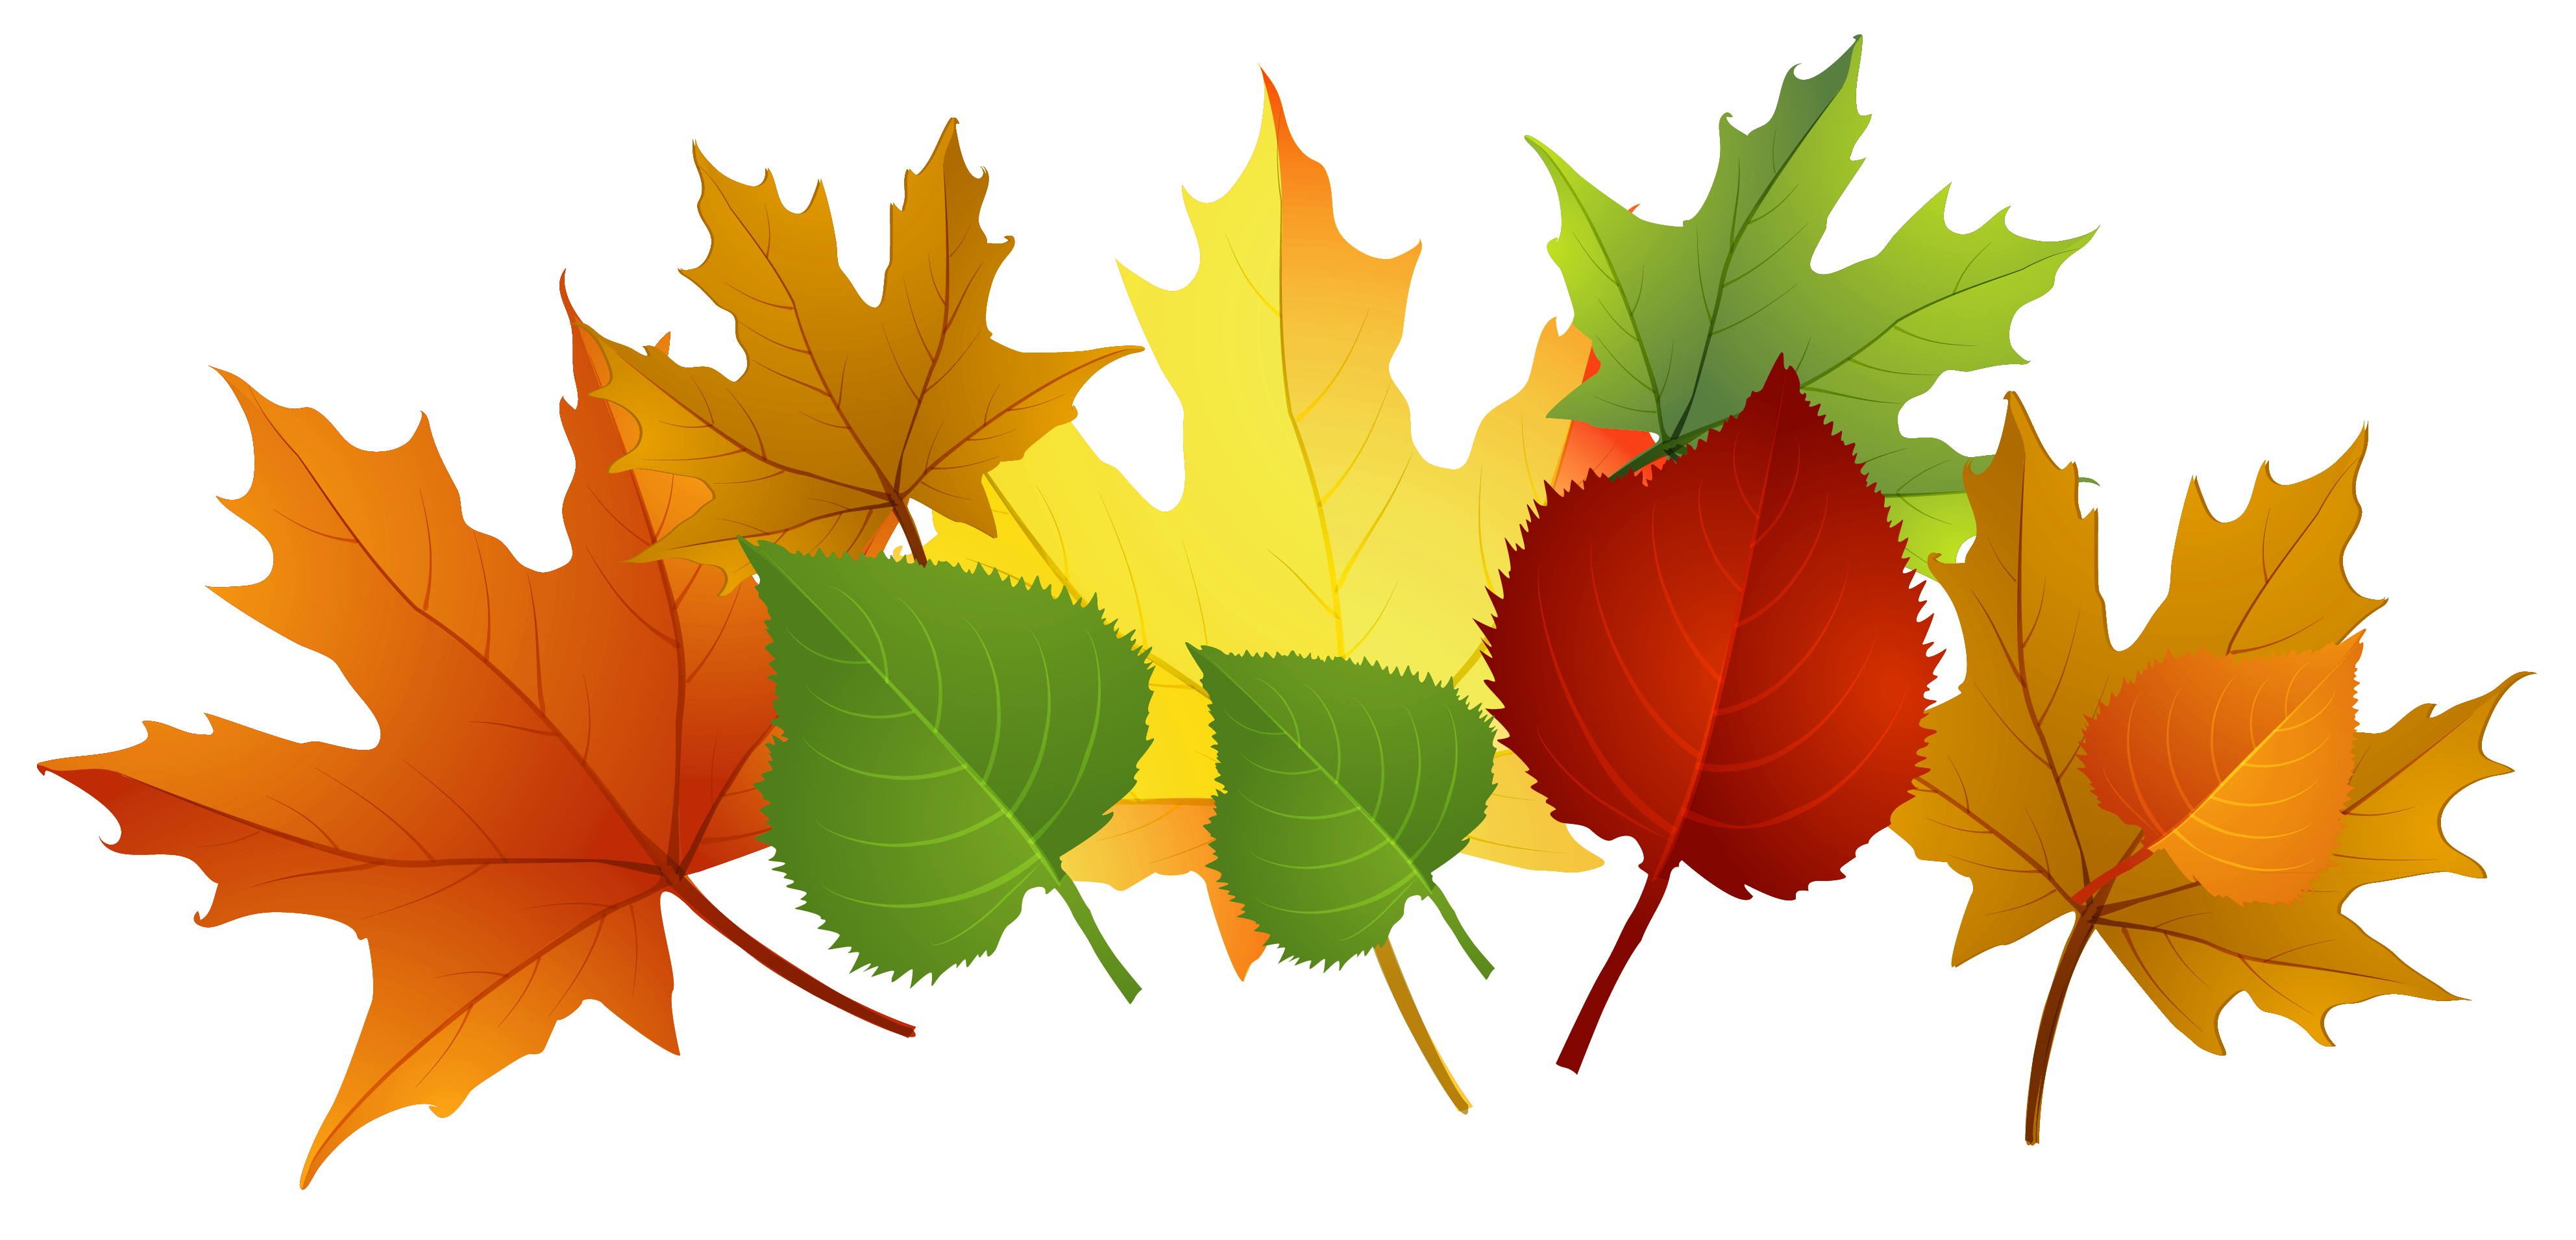 Fall Leaf Clip Art Free Cliparts That Yo-Fall Leaf Clip Art Free Cliparts That You Can Download To You-6